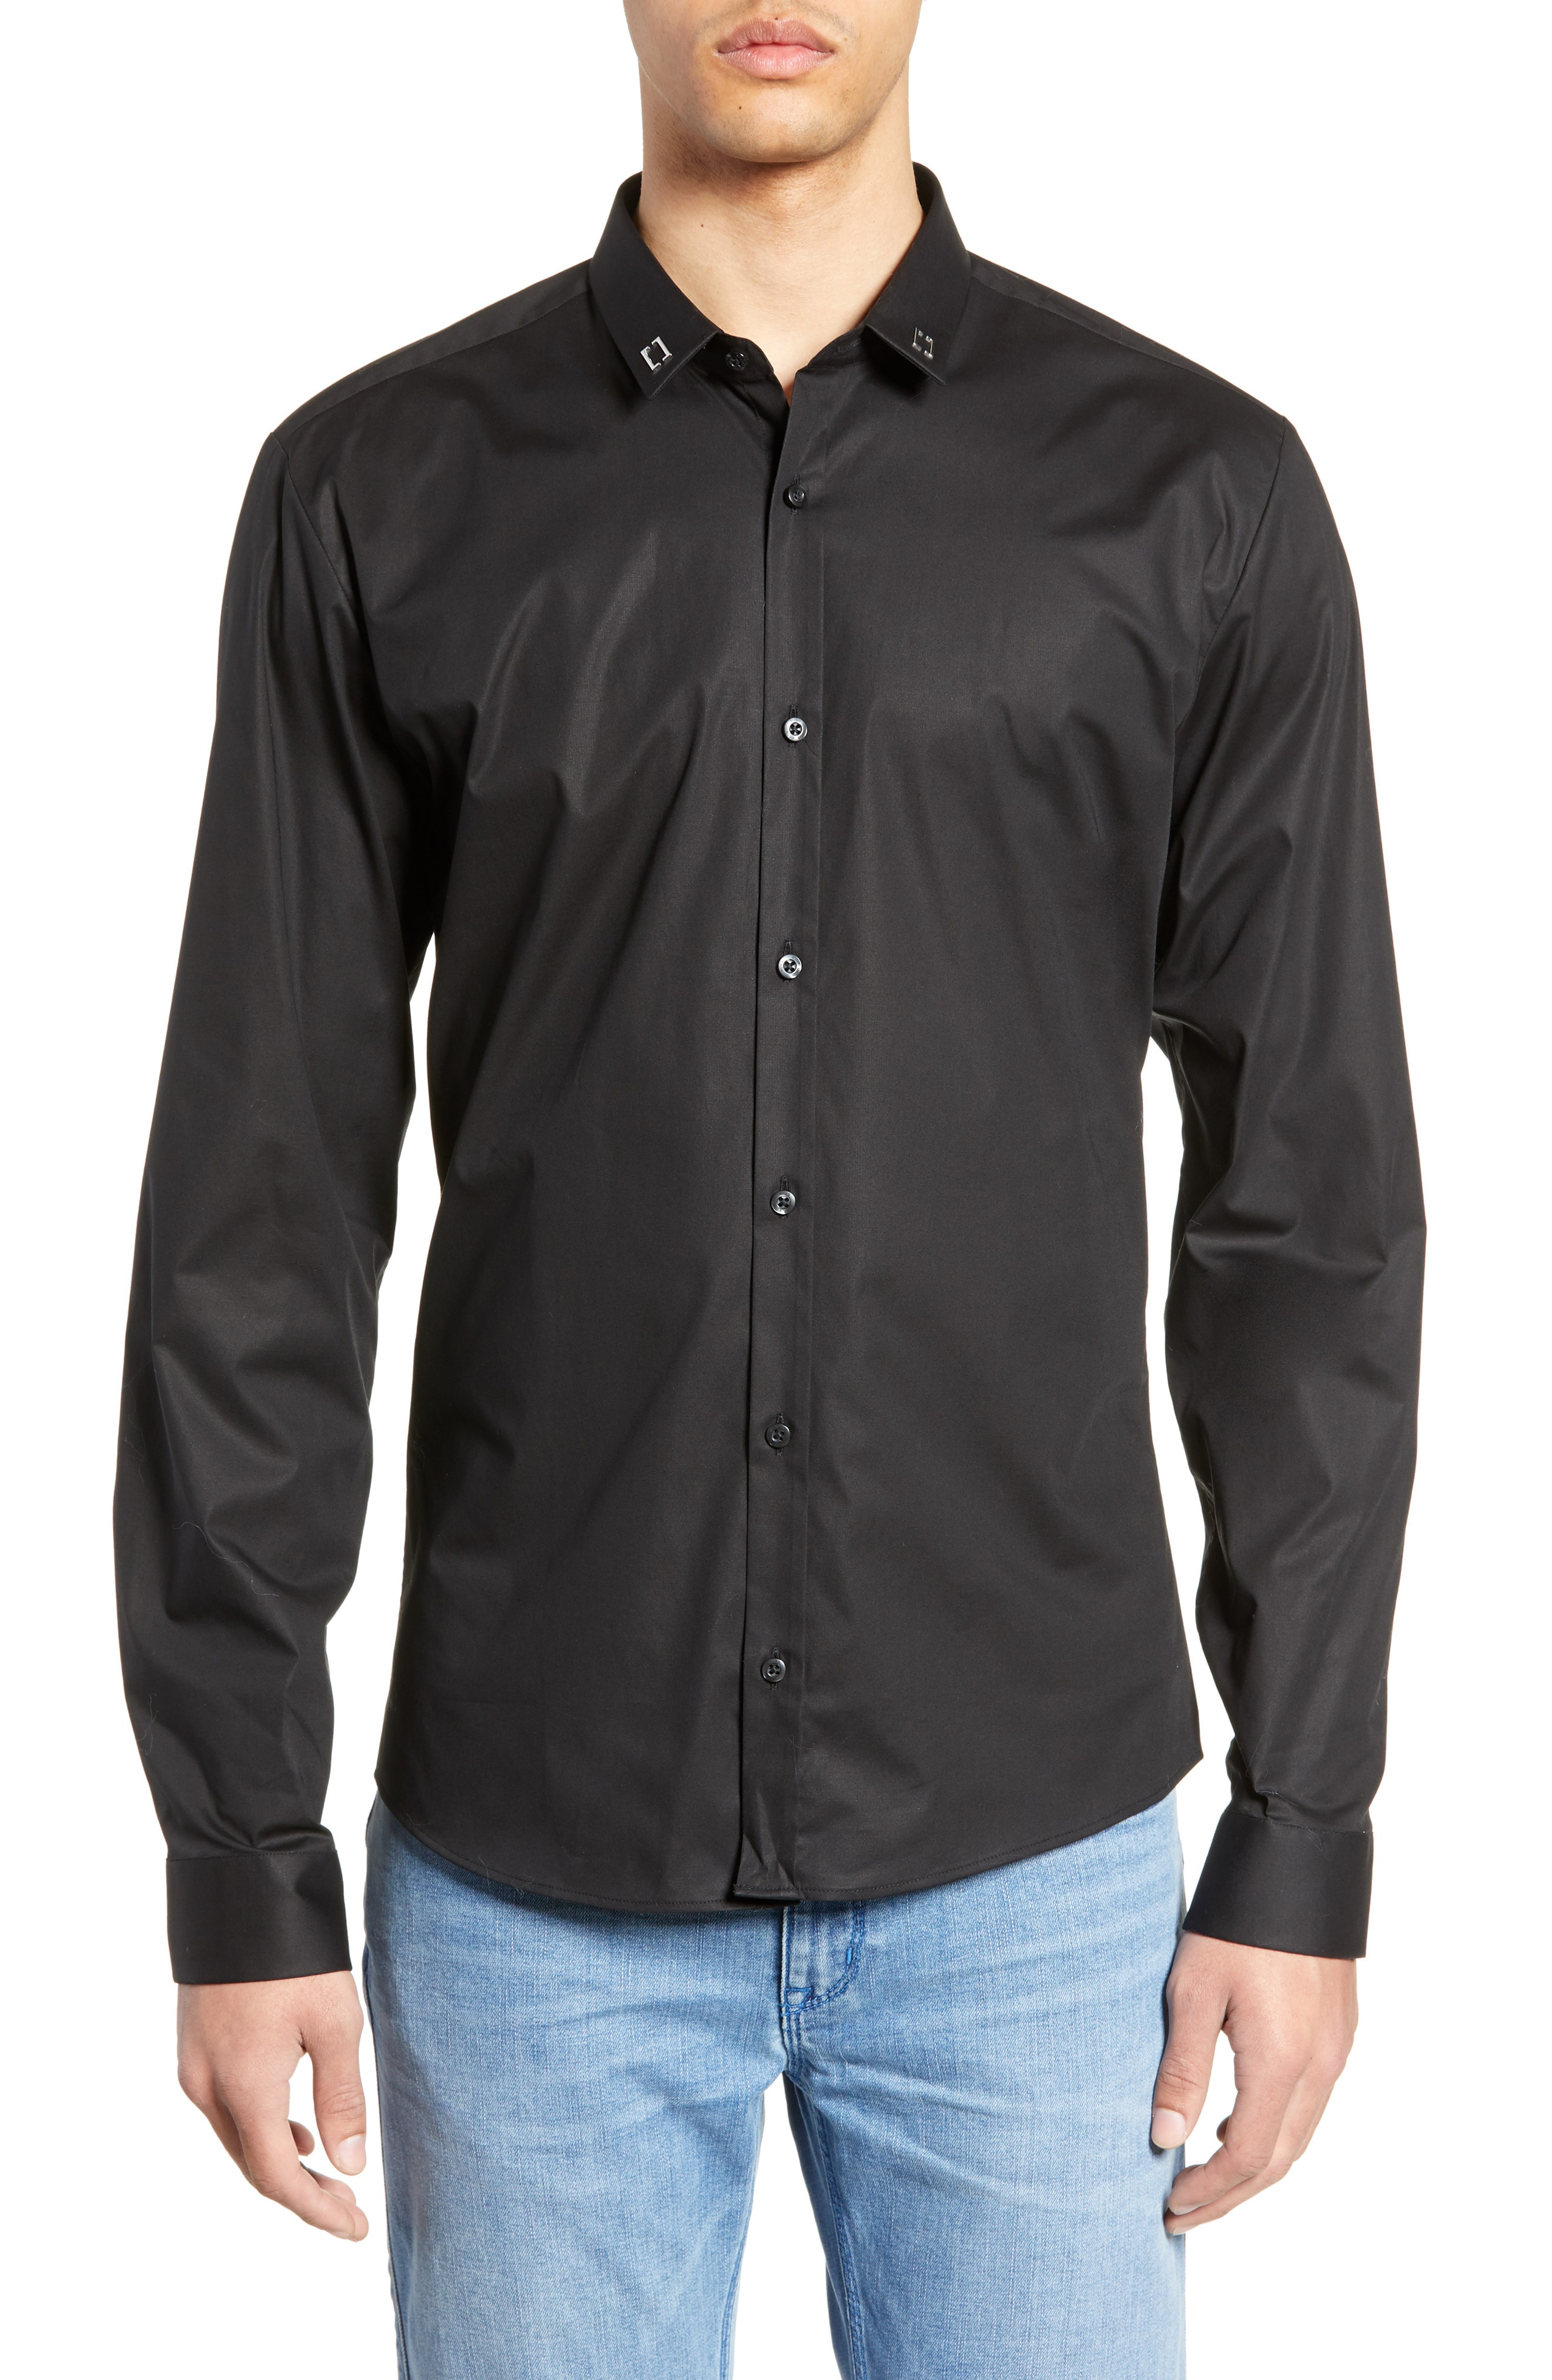 Men's HUGO Shirts | Nordstrom